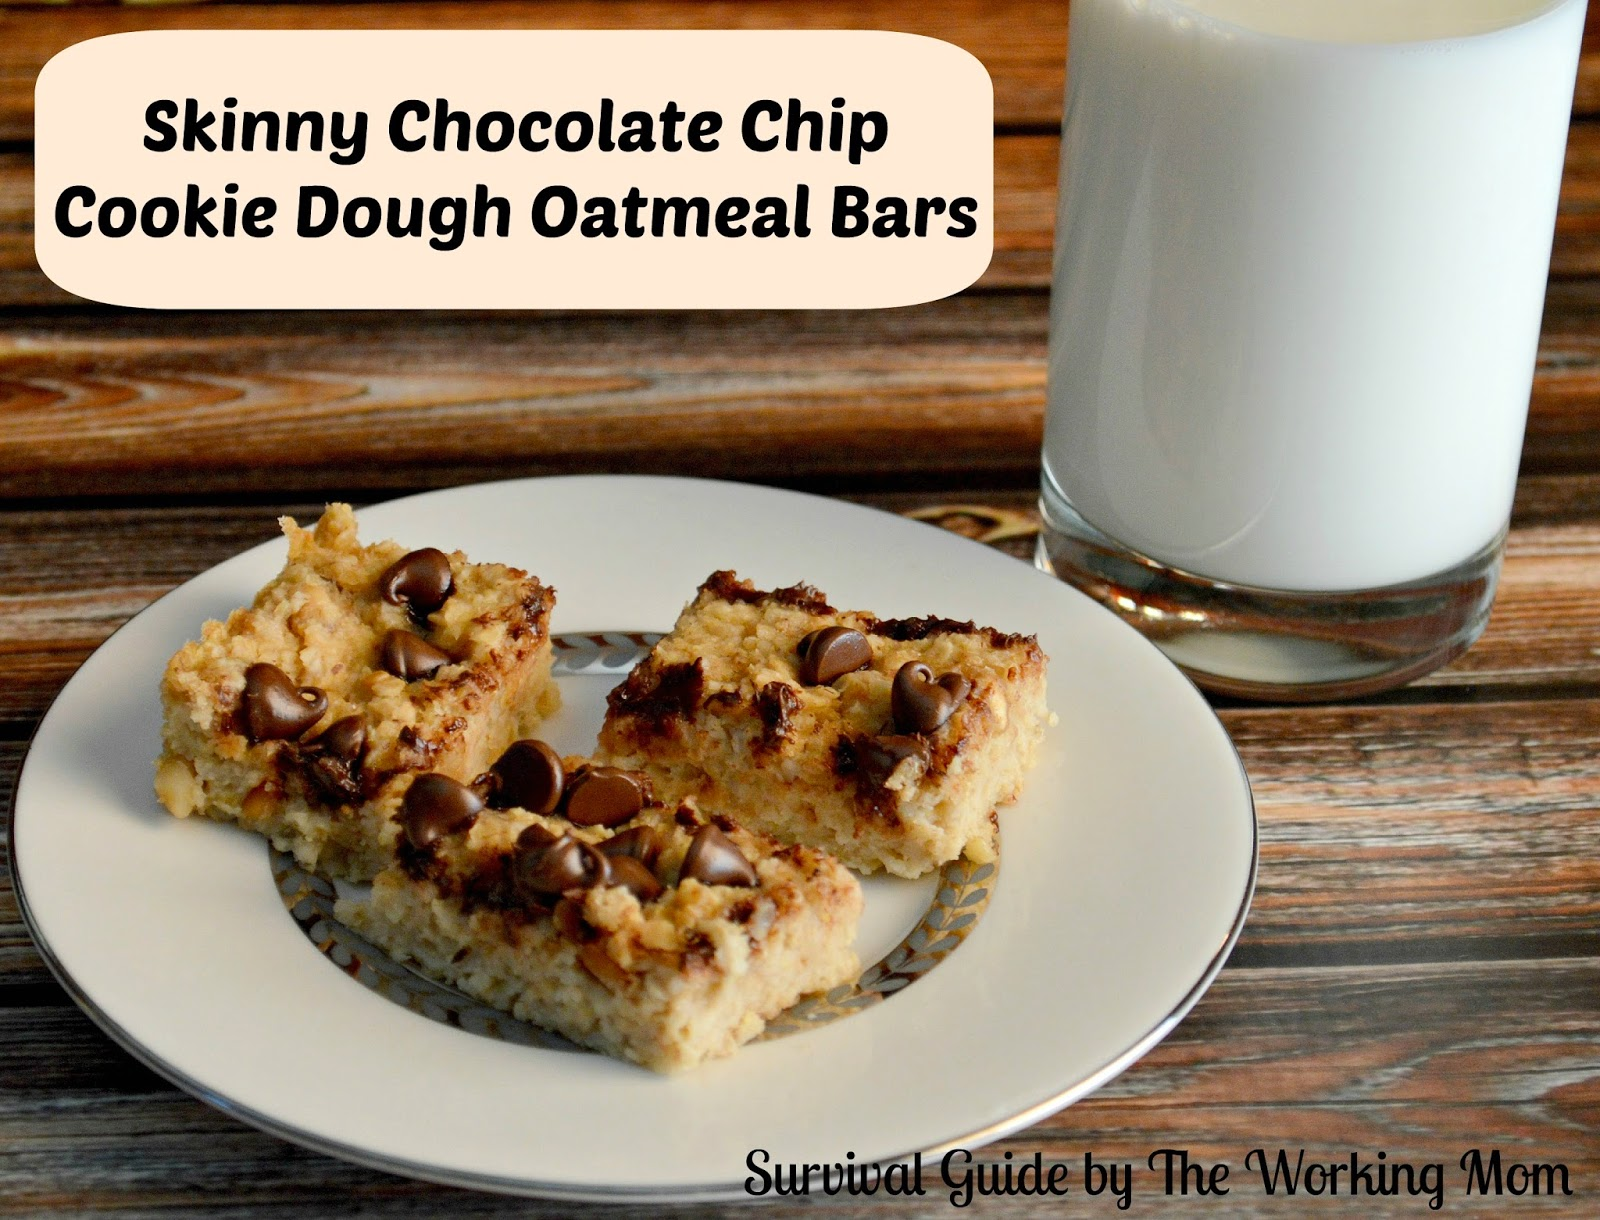 ... The Working Mom: Skinny Chocolate Chip Cookie Dough Oatmeal Bar Recipe